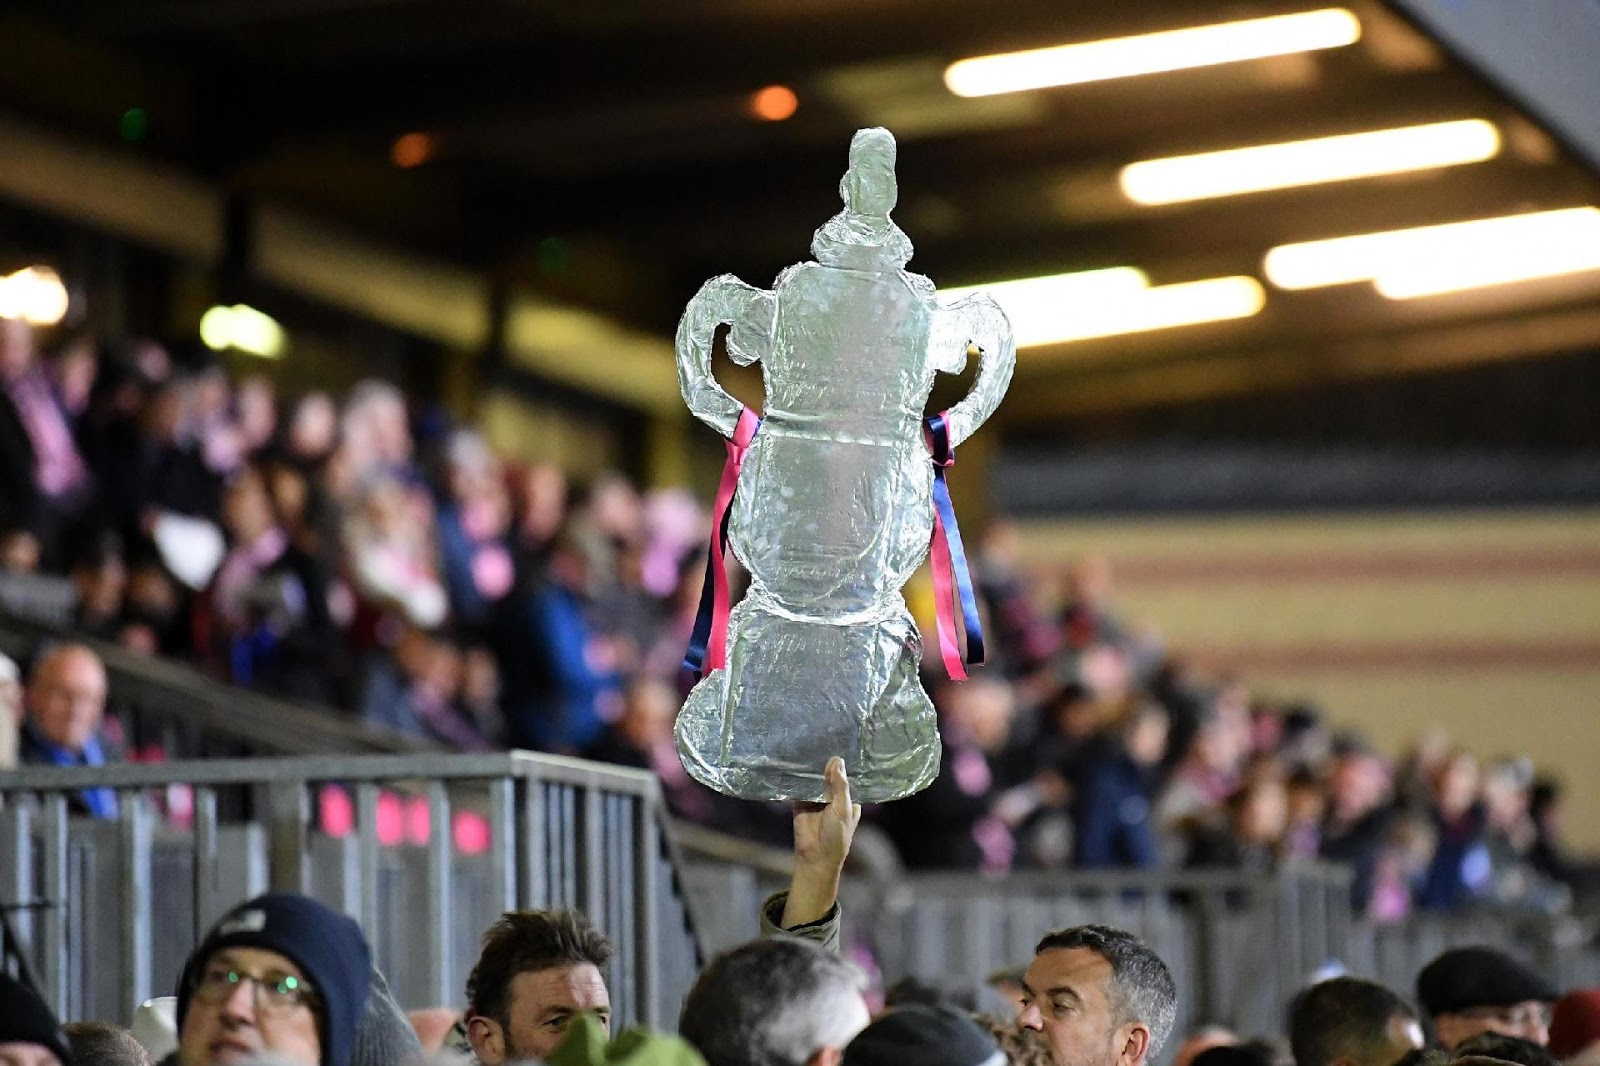 FA Cup 5th round fixtures: Chelsea vs Liverpool; Rooney's Derby face Man Utd